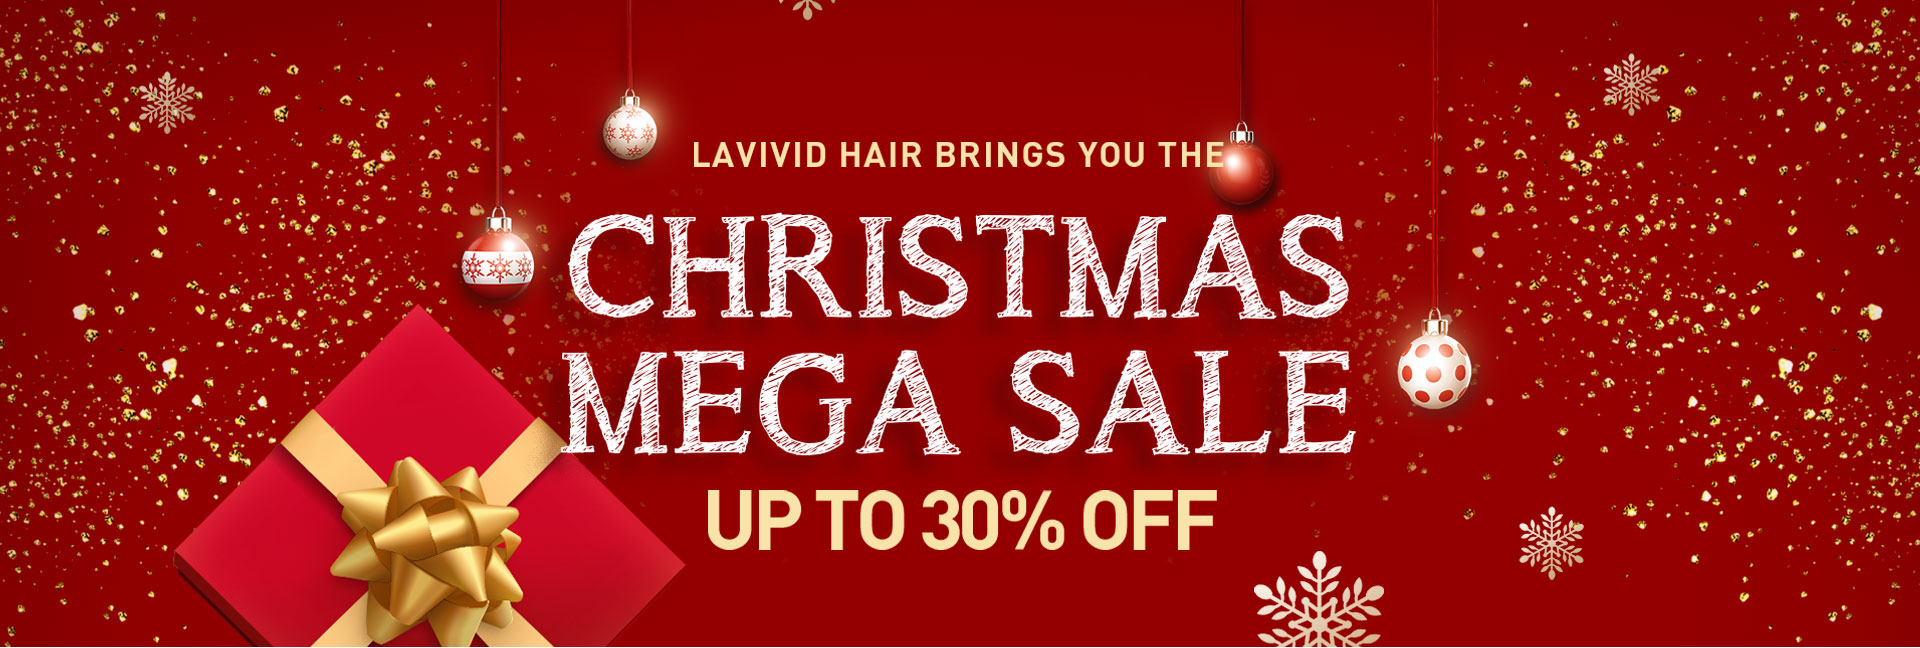 toupee sale christmas